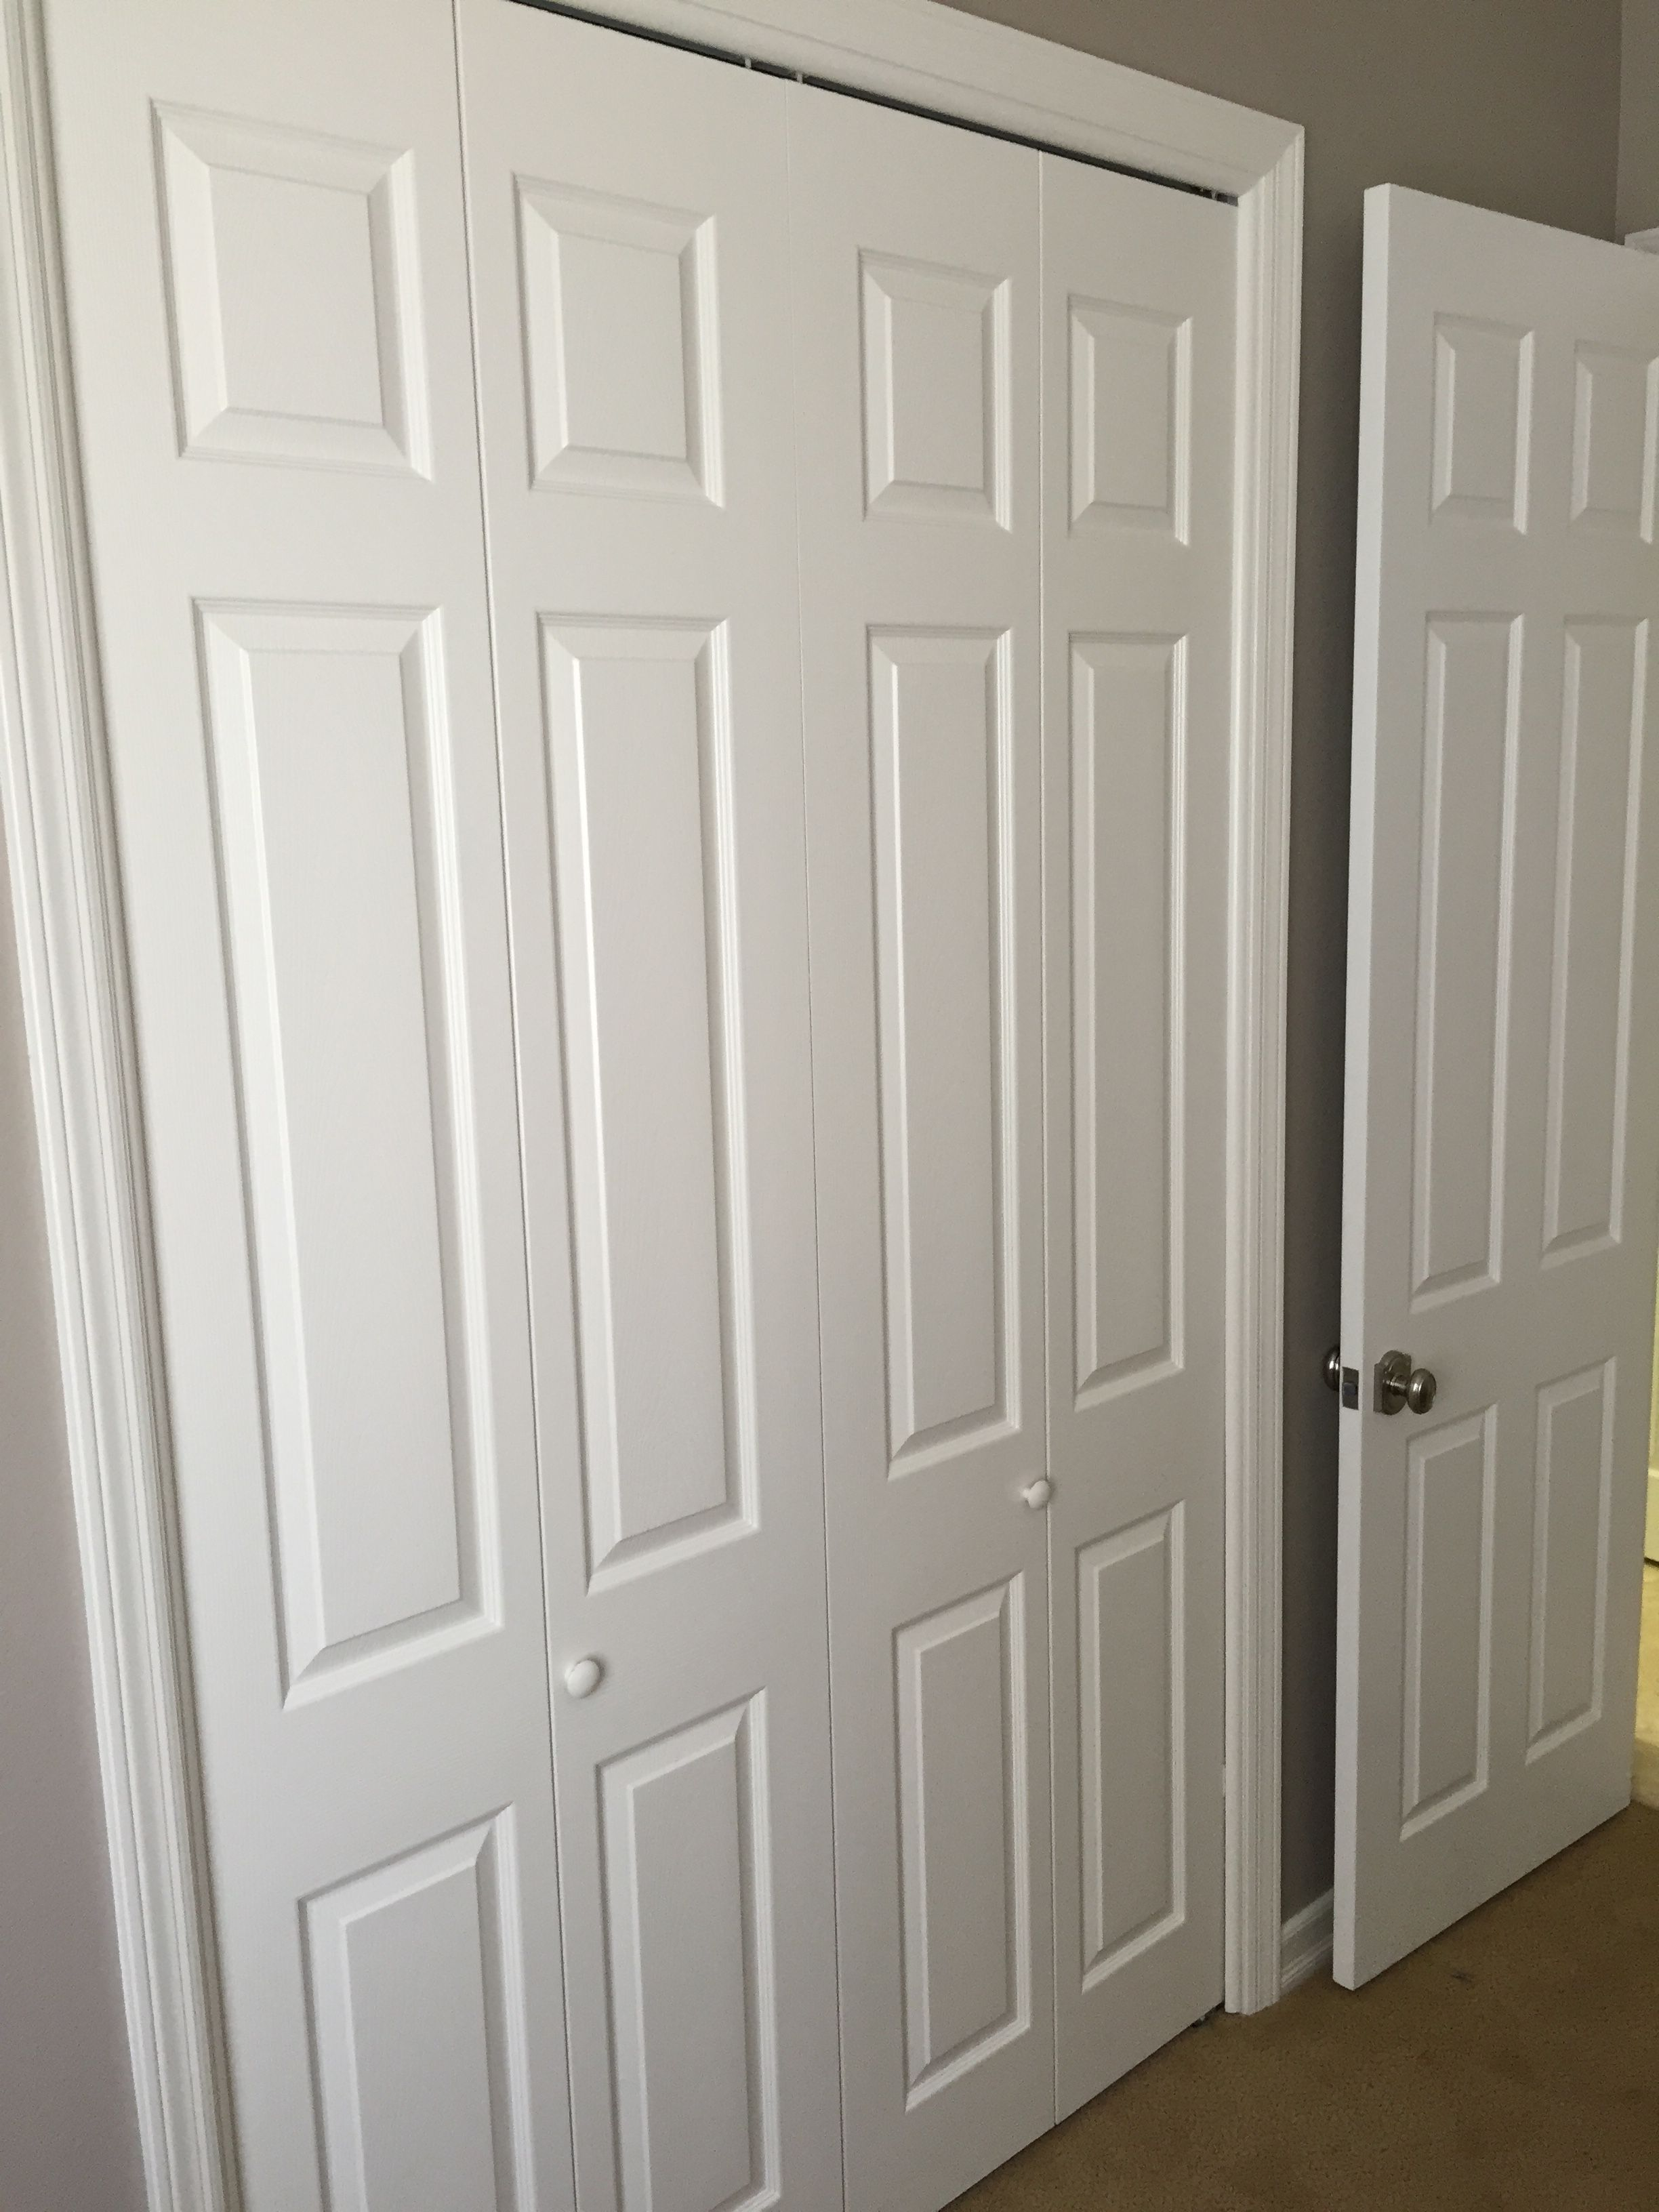 4 Panel Bi-Folding Hollow Core Closet Doors. The molded design is called colonist smooth. The doors come installed in a raw white finish that can be primed ... & 4 Panel Bi-Folding Hollow Core Closet Doors. The molded design is ...